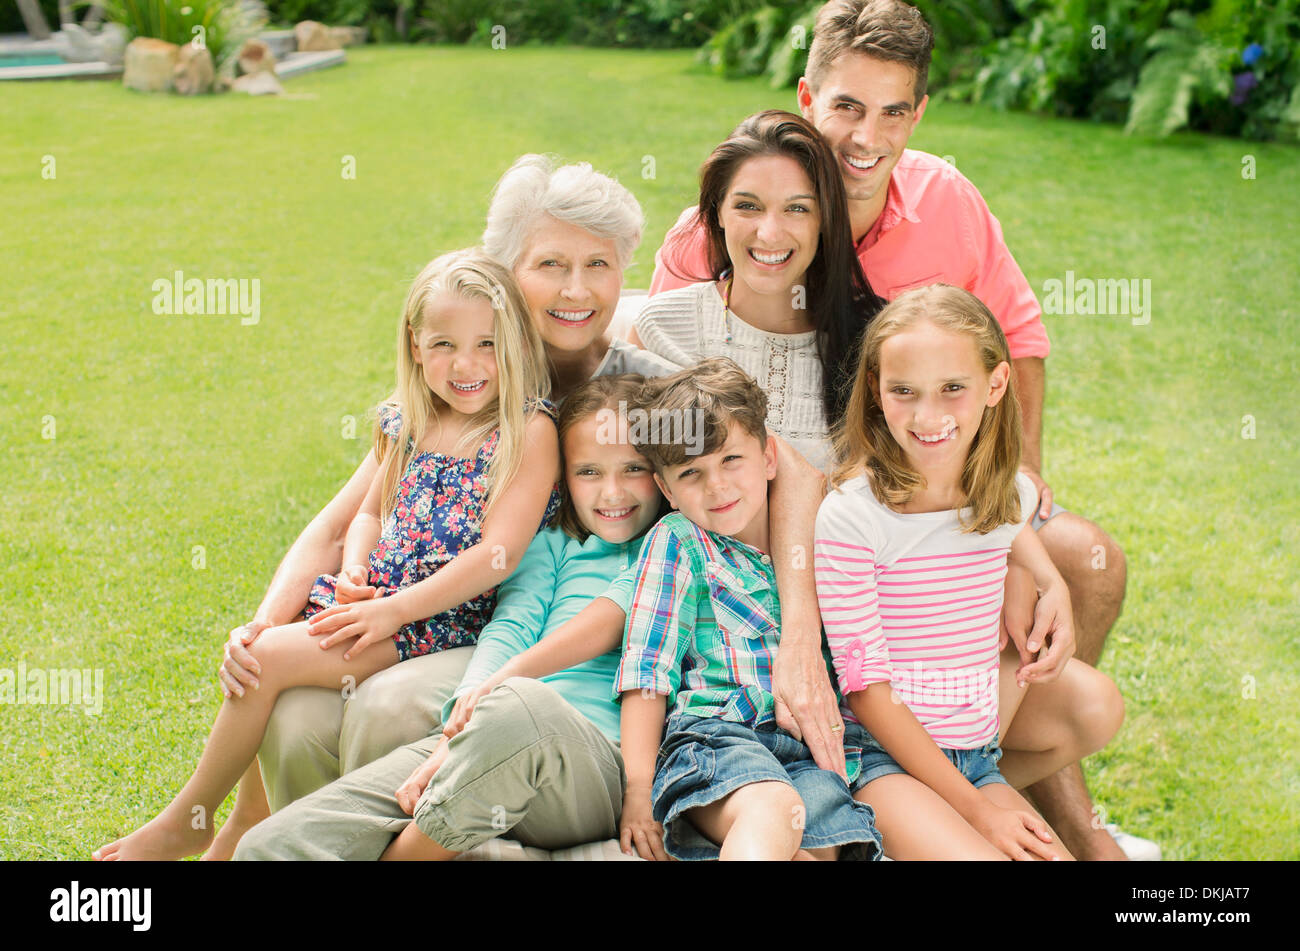 Multi-generation family smiling together in backyard Photo Stock